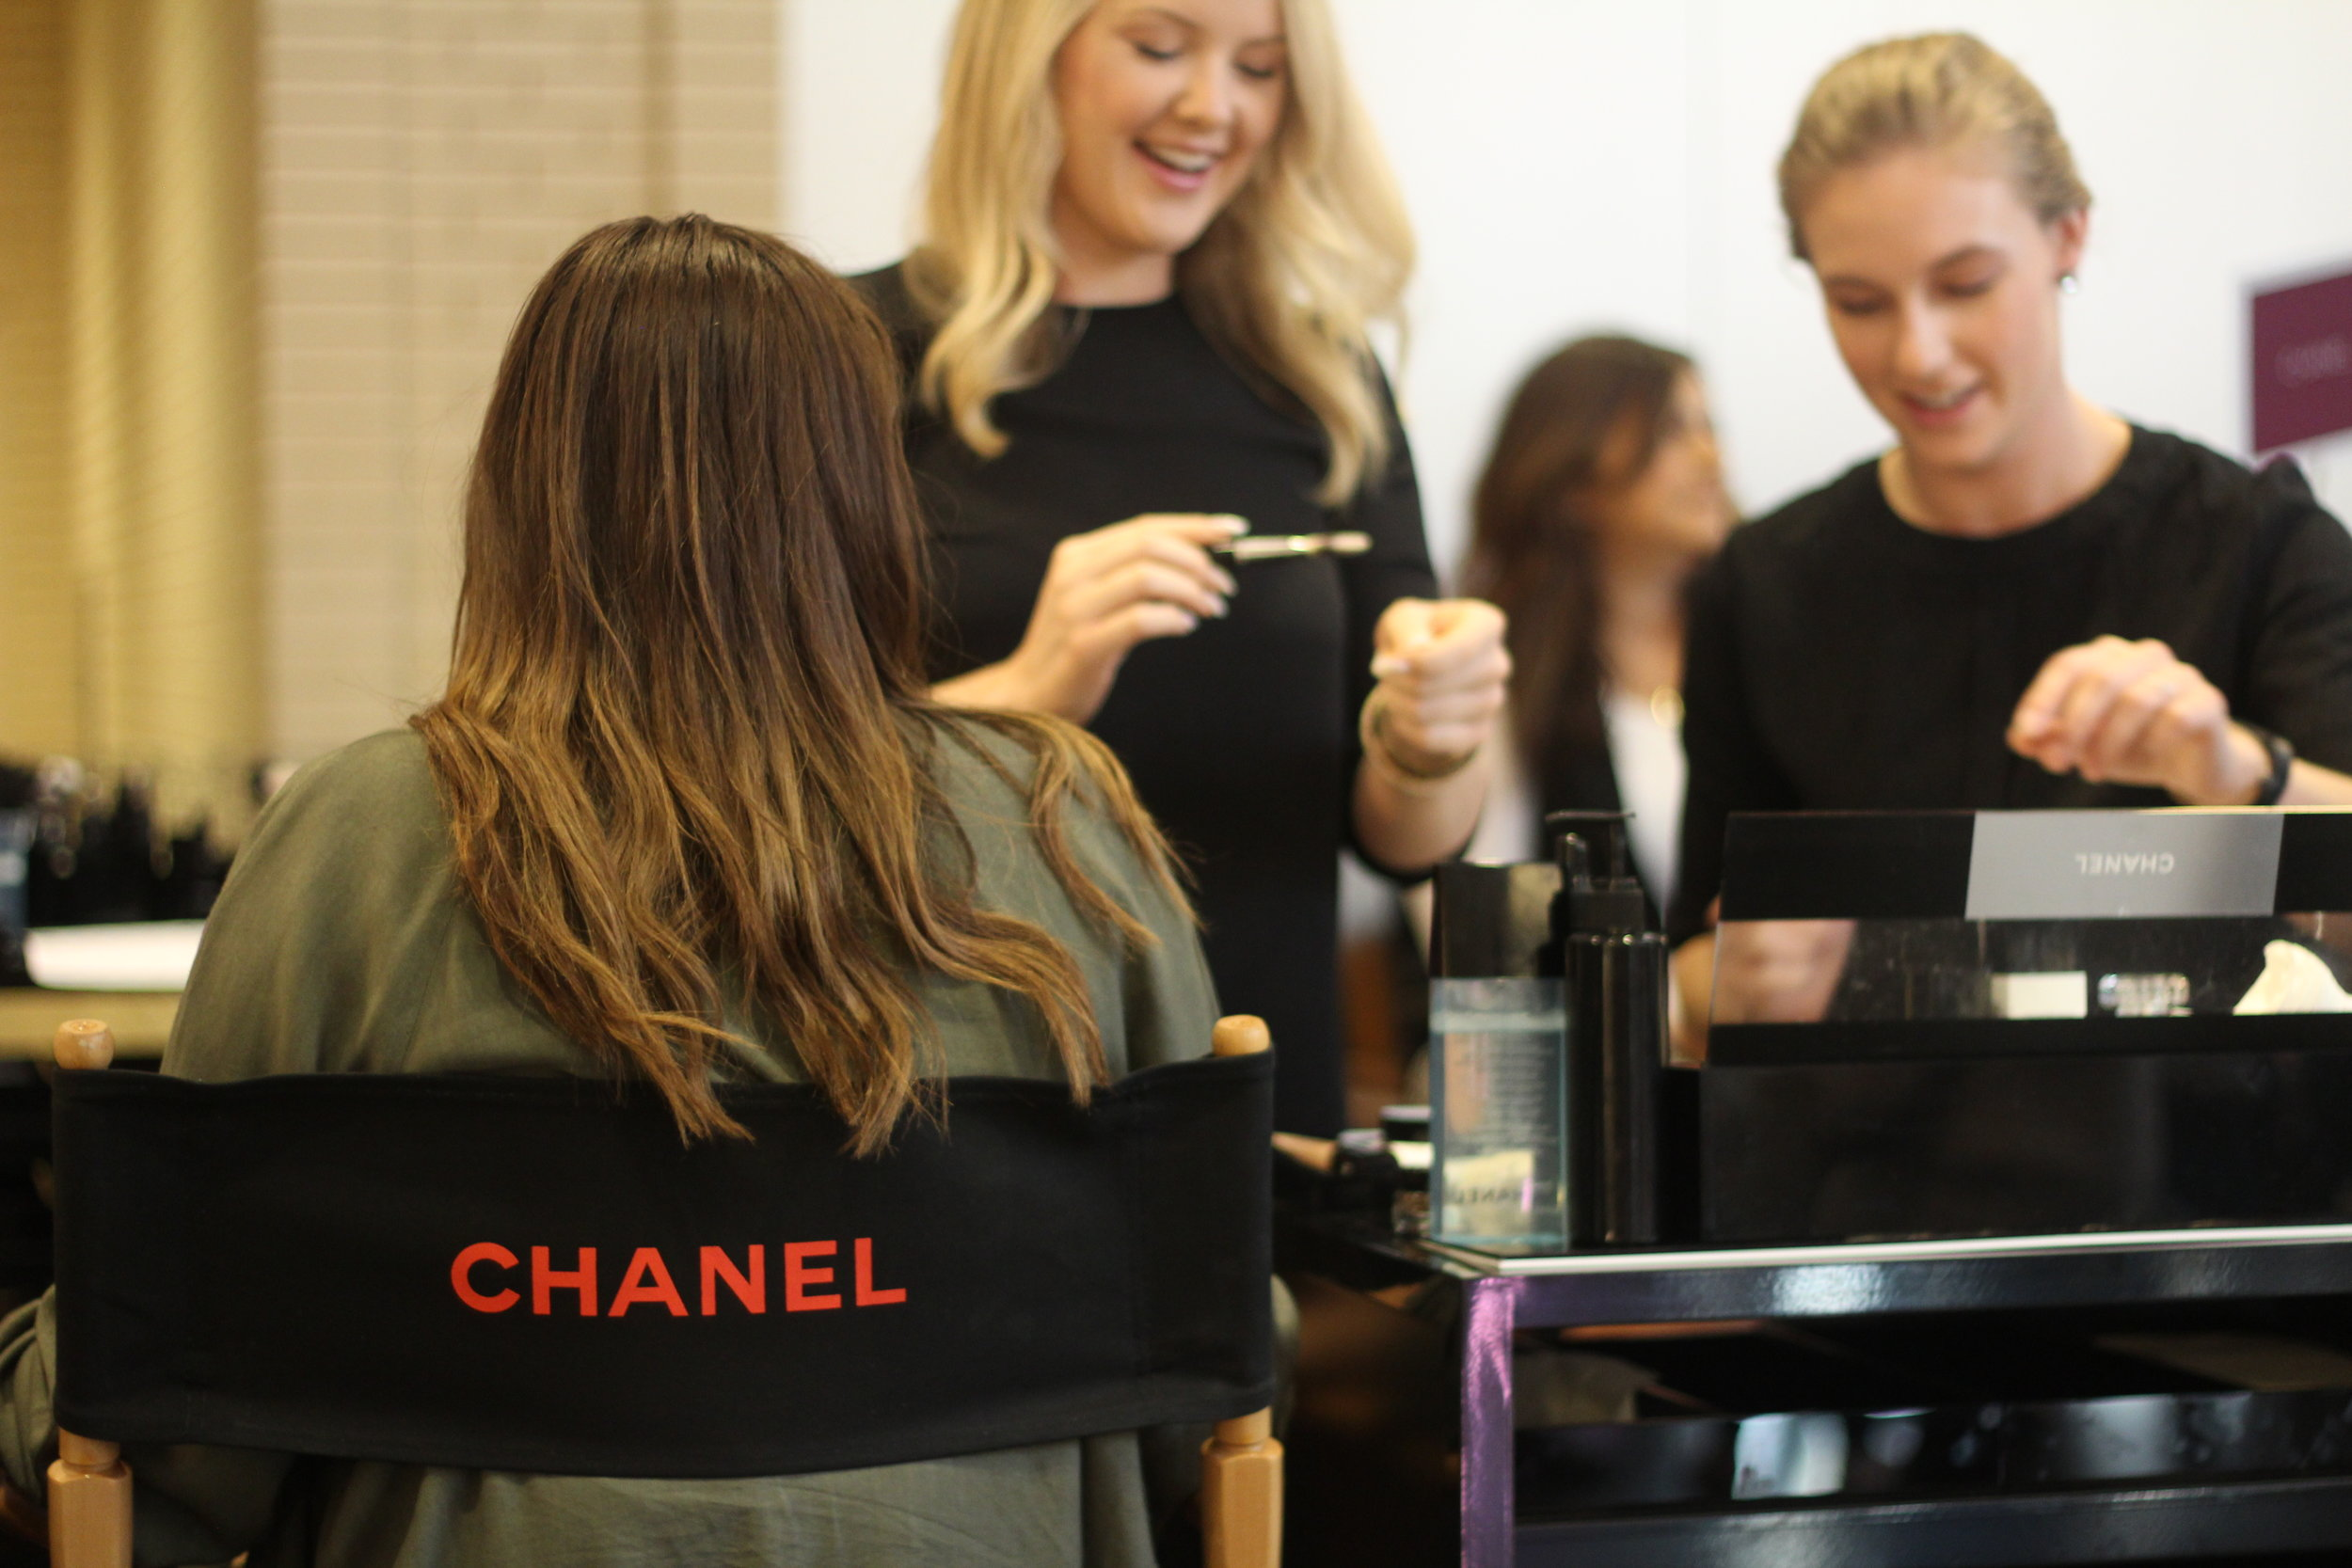 Customer getting a quick makeover at Chanel after the Nordstrom Beauty Trend Show at NorthPark Center.